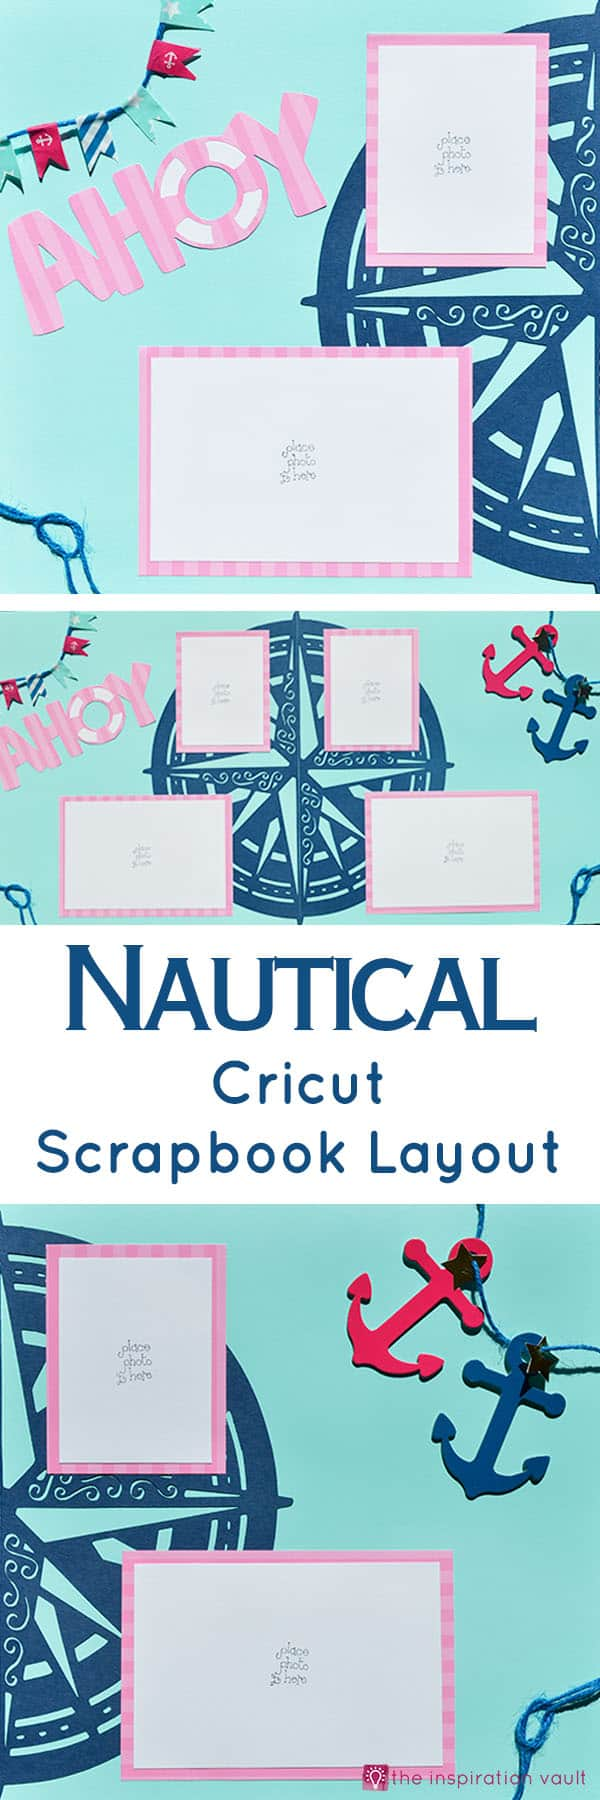 Nautical Cricut Scrapbook Layout Craft Tutorial - Make this awesome Nautical Cricut Layout using the Edge to Edge and Create A Friend Cricut Cartridges. The washi tape flags were fun to make and a great addition to this page. You will be ready to scrapbook your sailing, fishing trip, or boating photos after creating this great scrapbook layout.